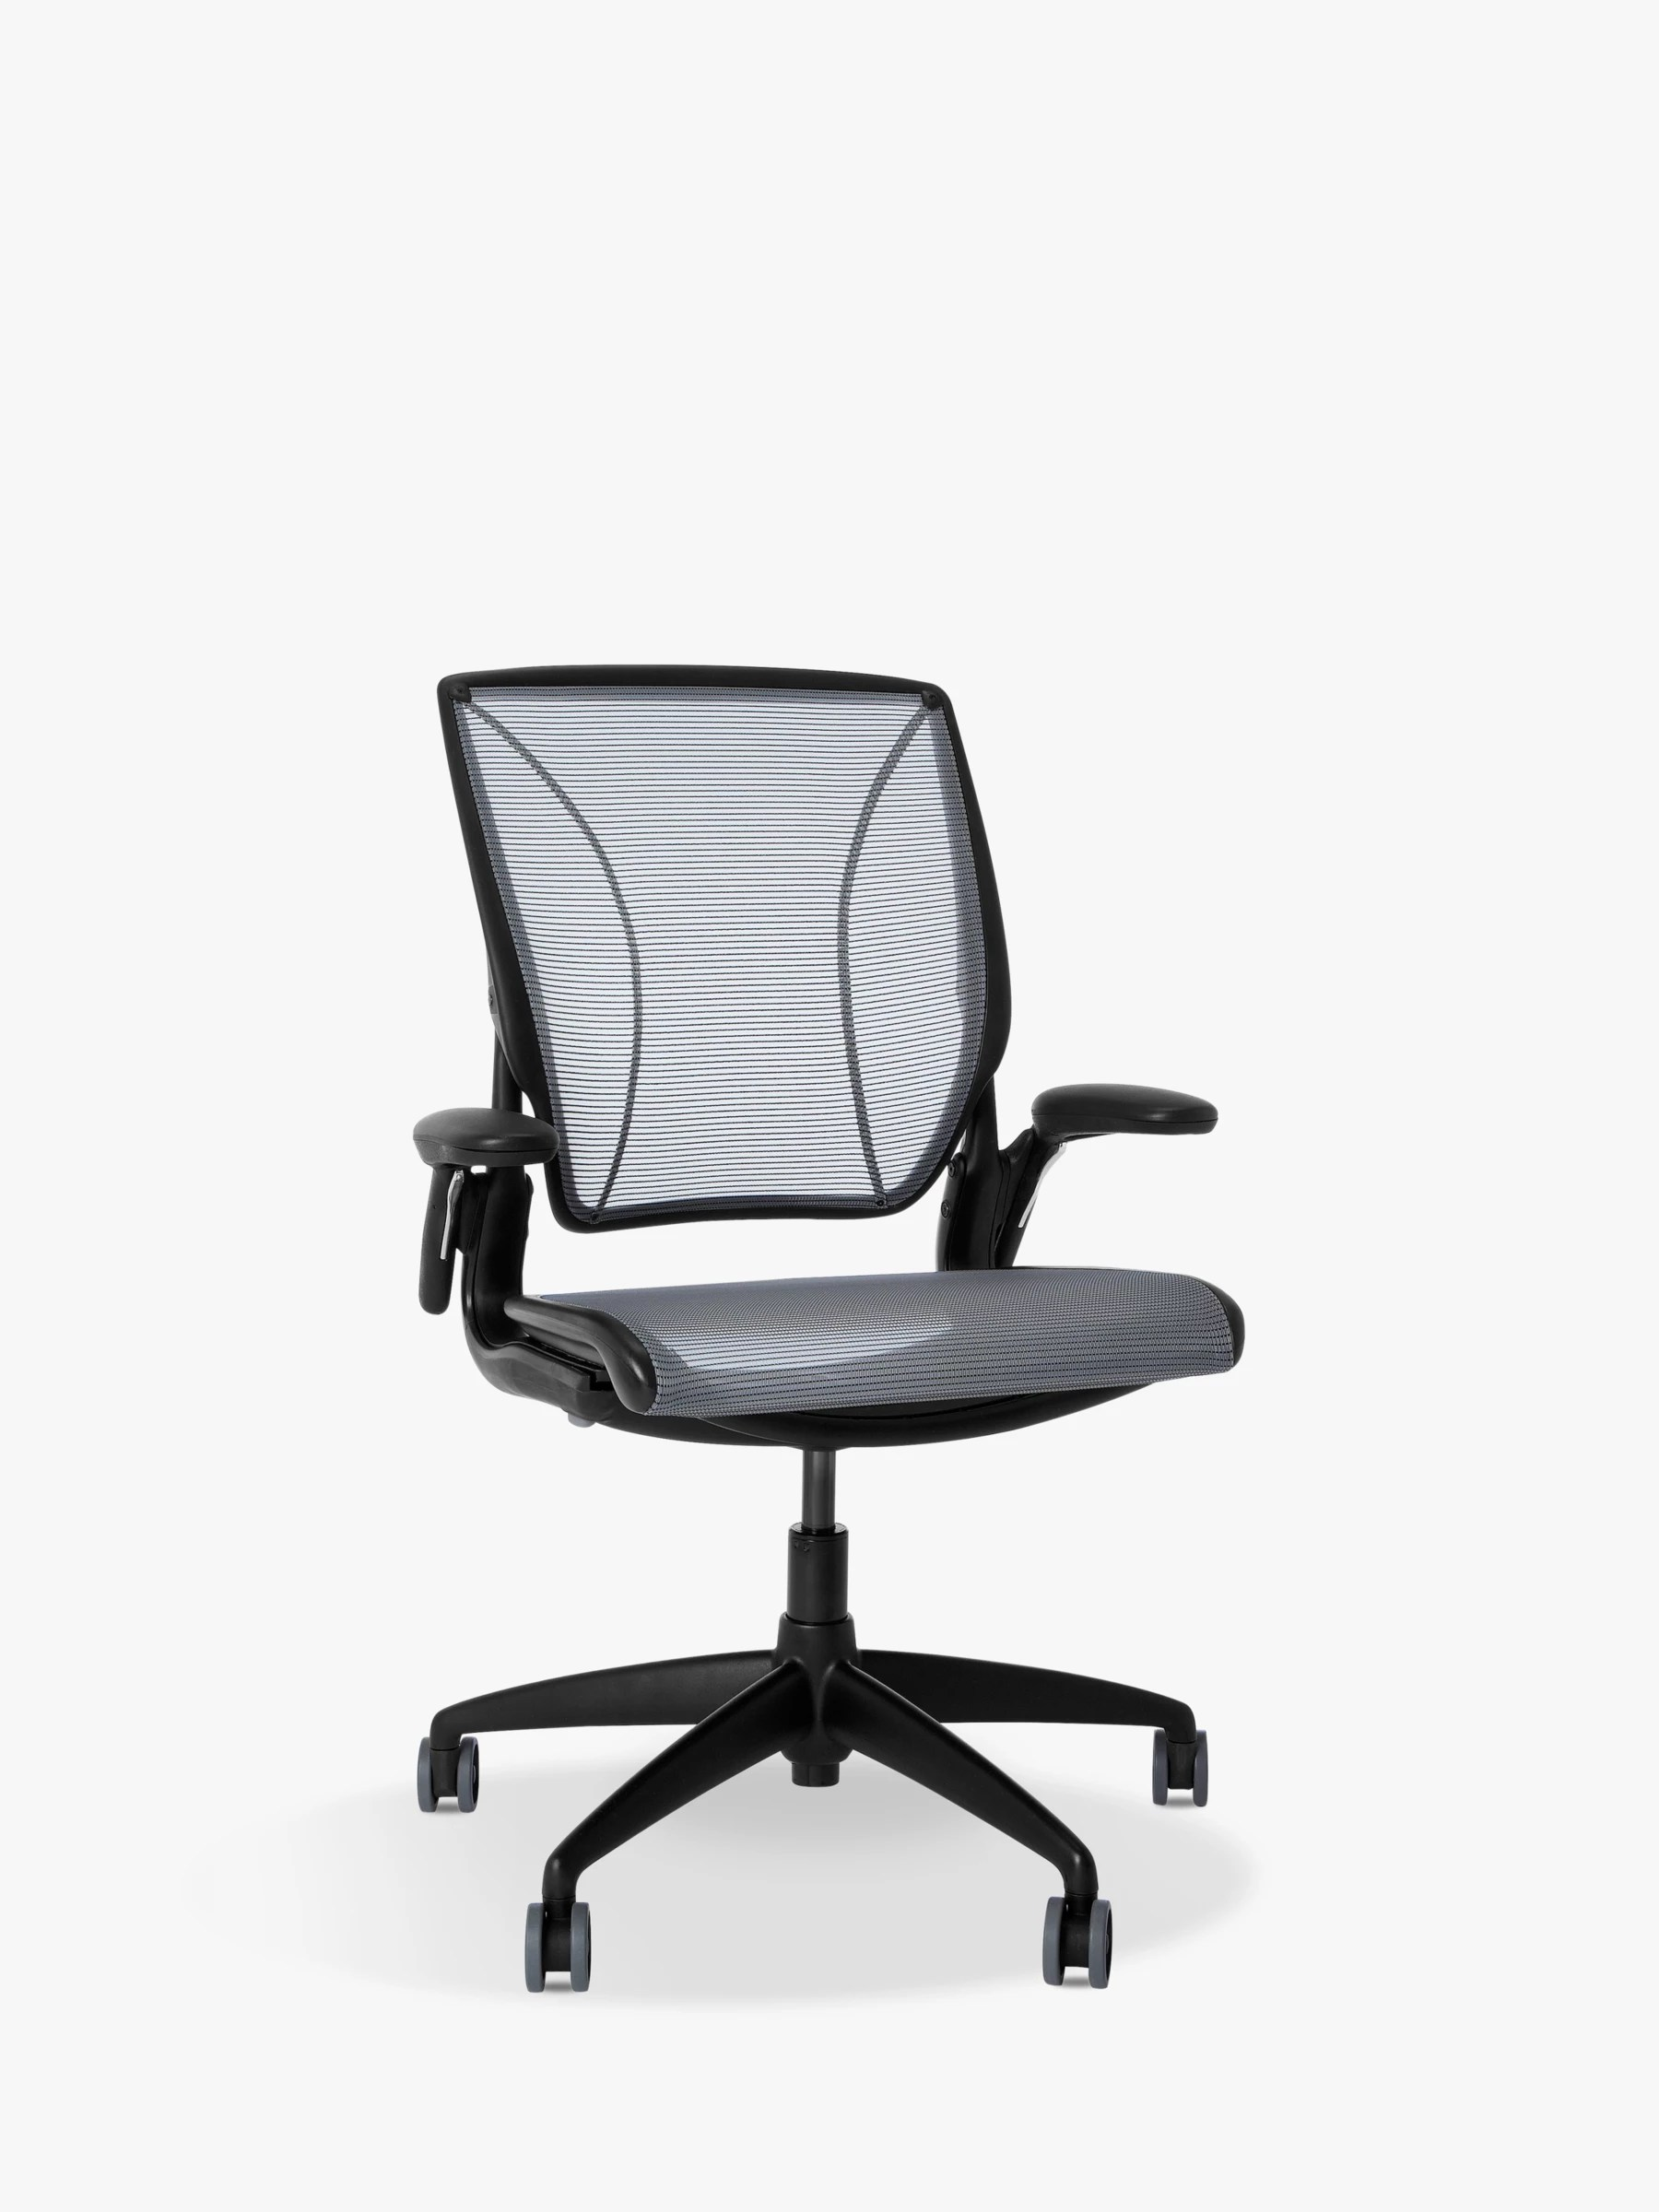 Humanscale Diffrient World Chair Humanscale Diffrient World Office Chair At John Lewis